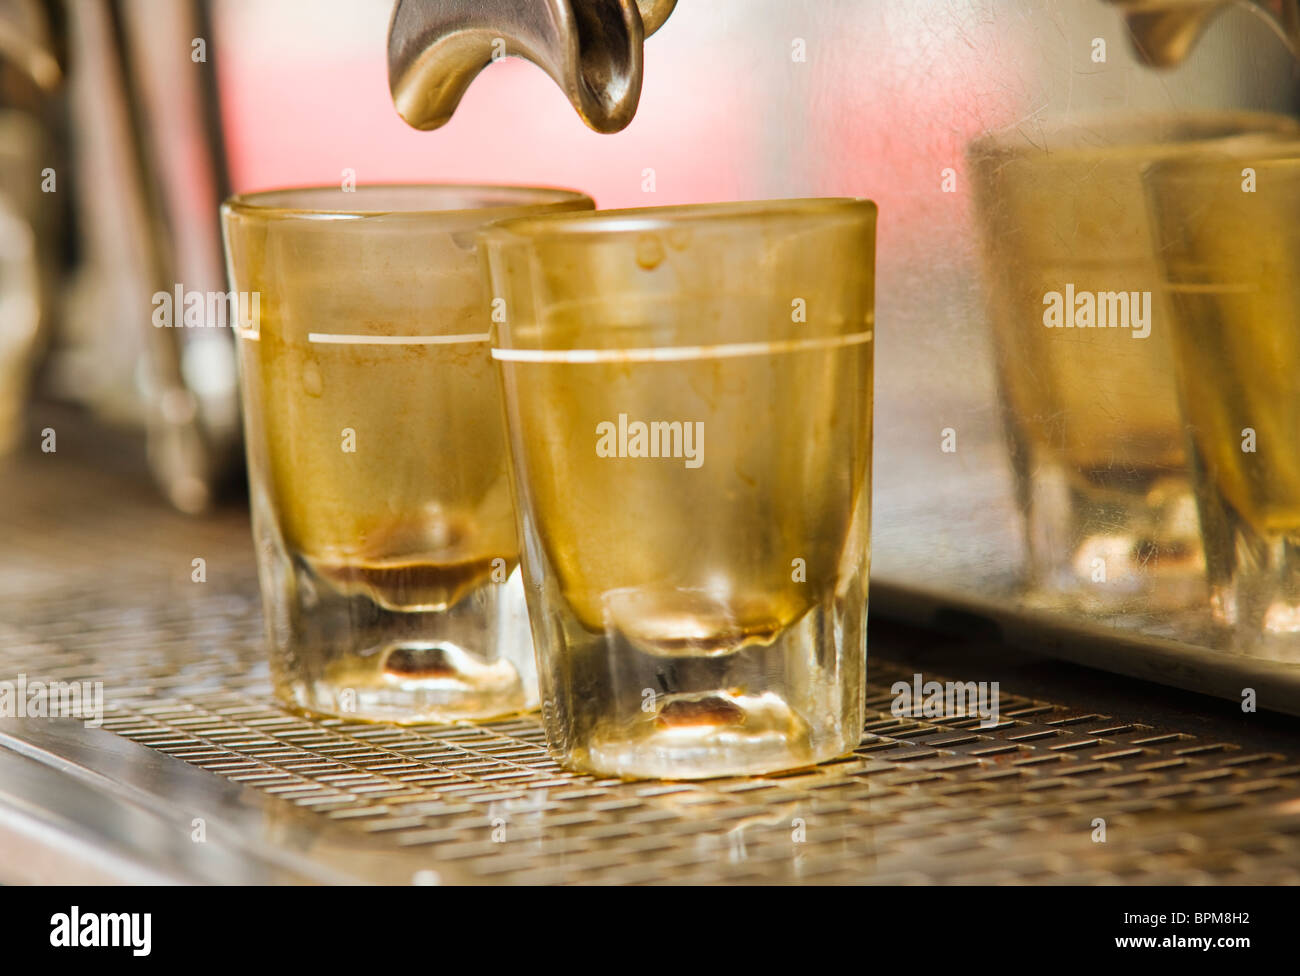 Two coffee stained shot glasses on an espresso machine. Seattle, WA - Stock Image